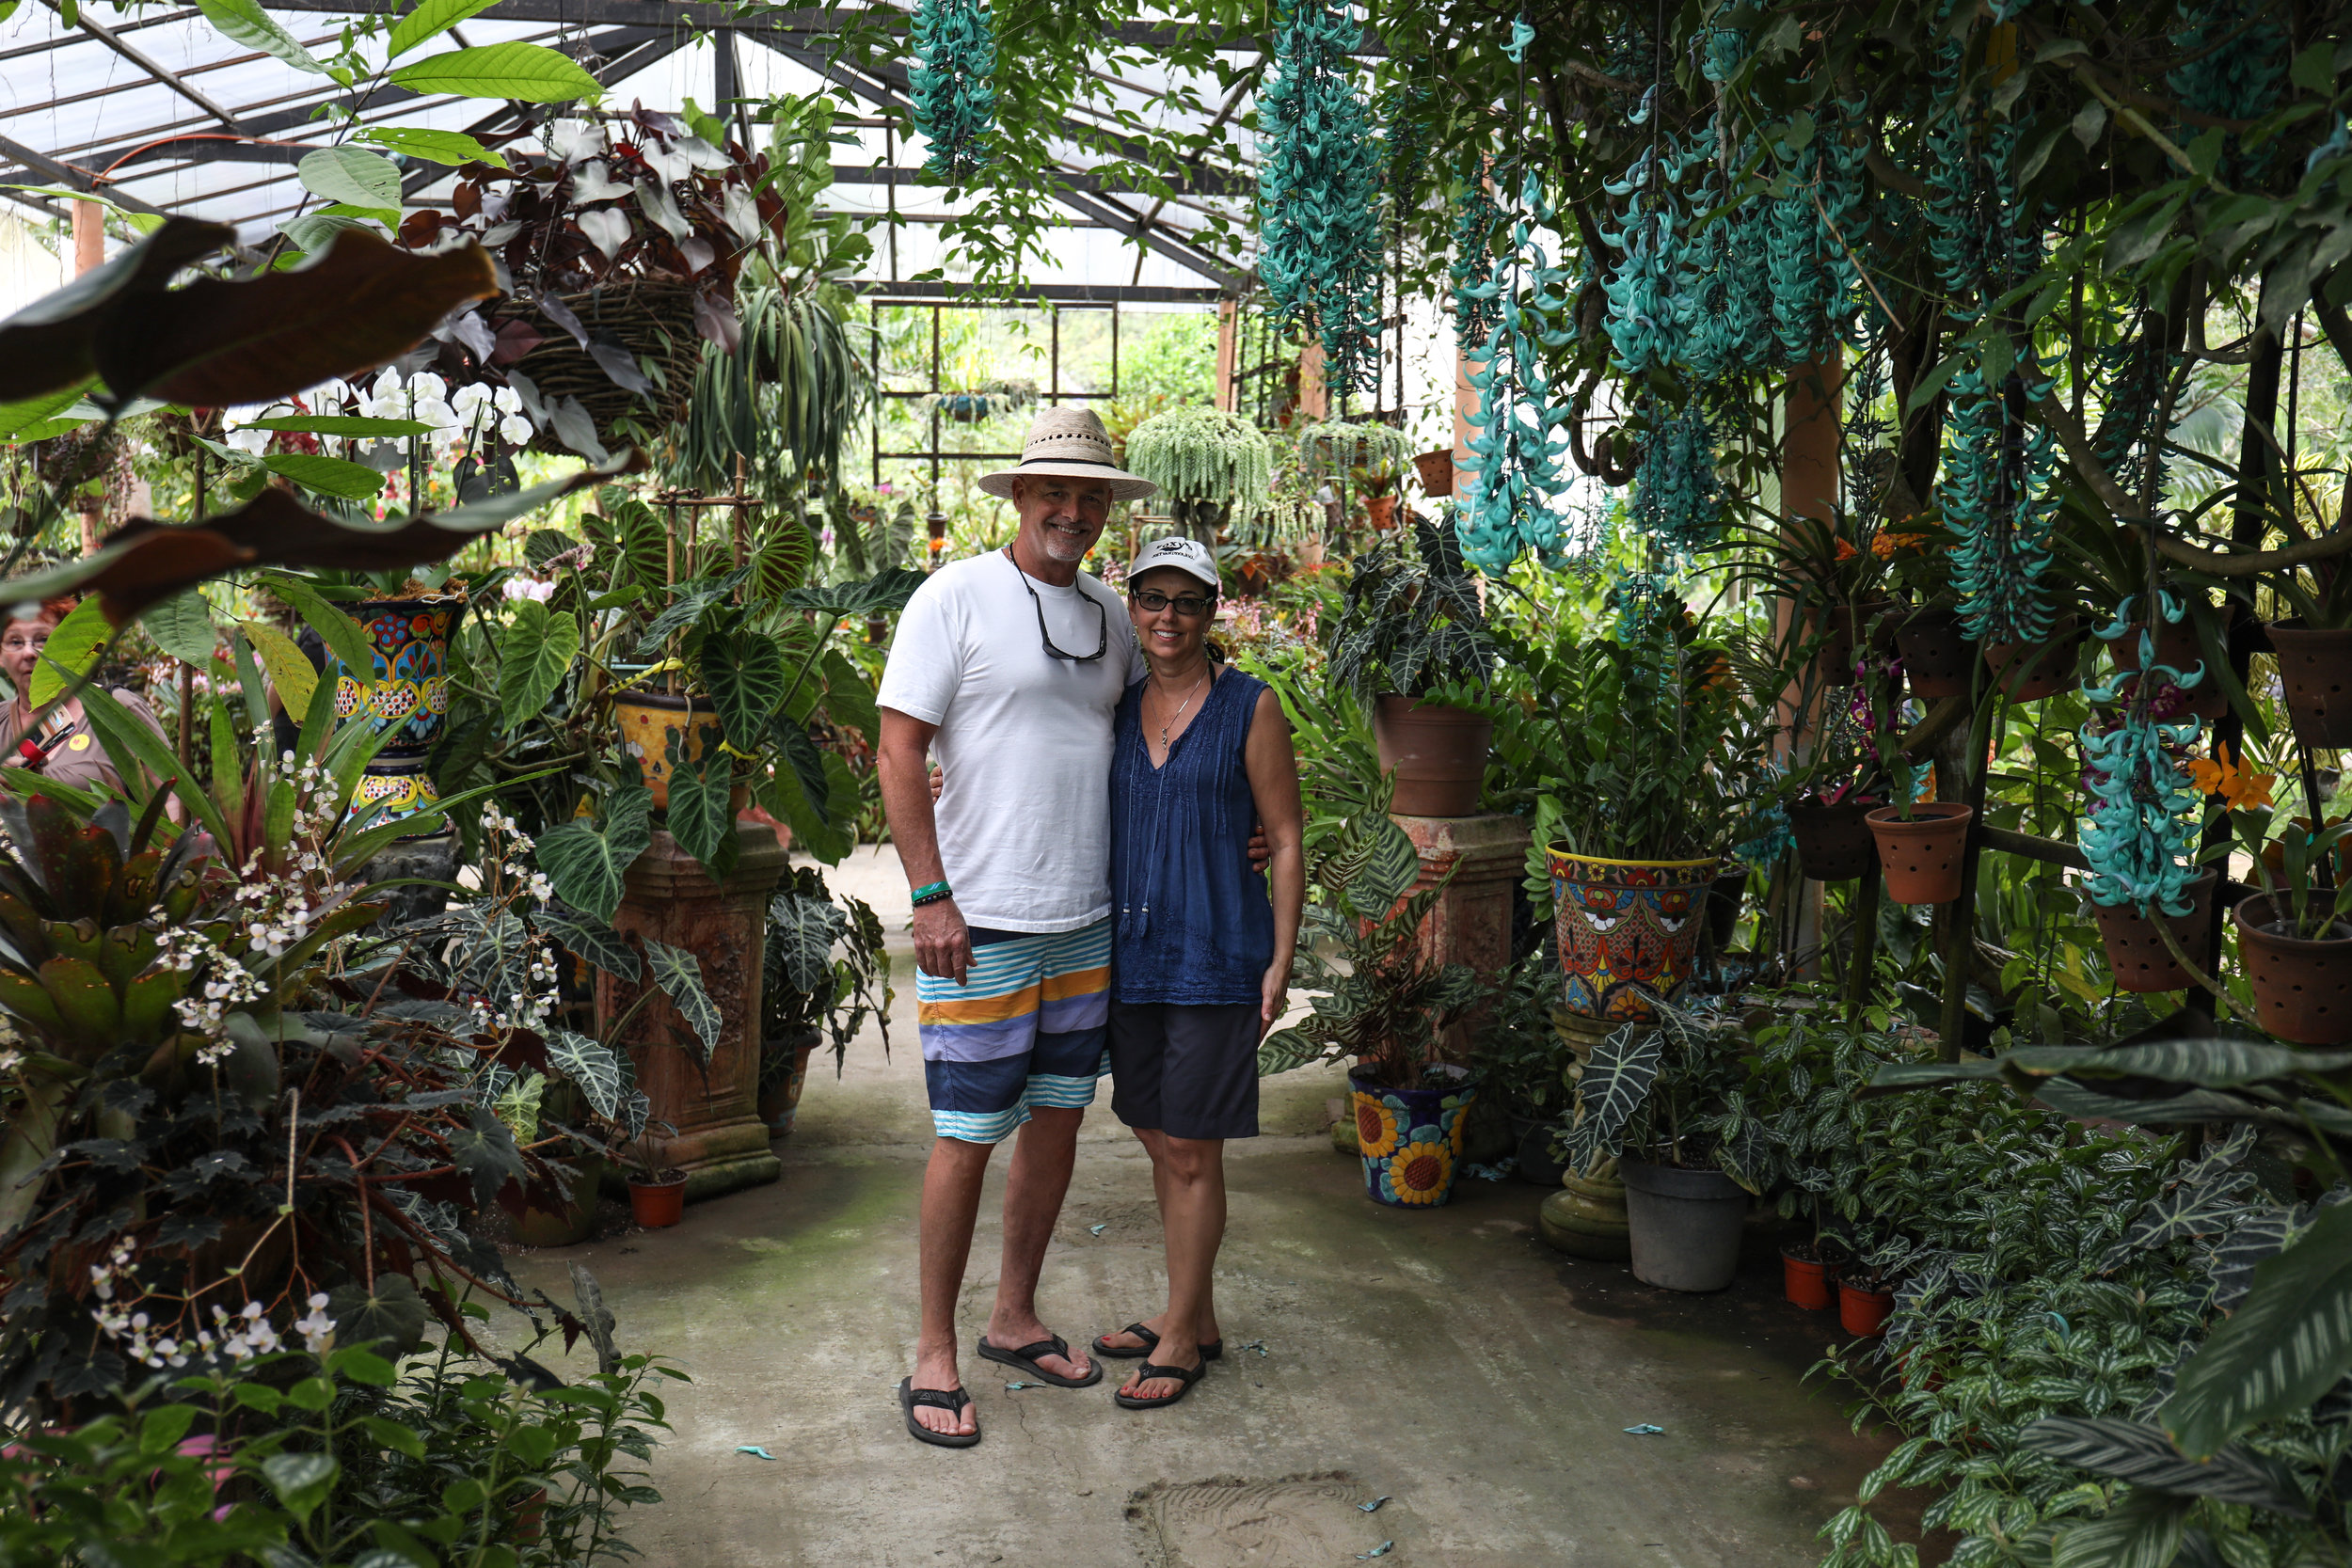 Mom and dad enjoying the beautiful botanical gardens just outside of PV.